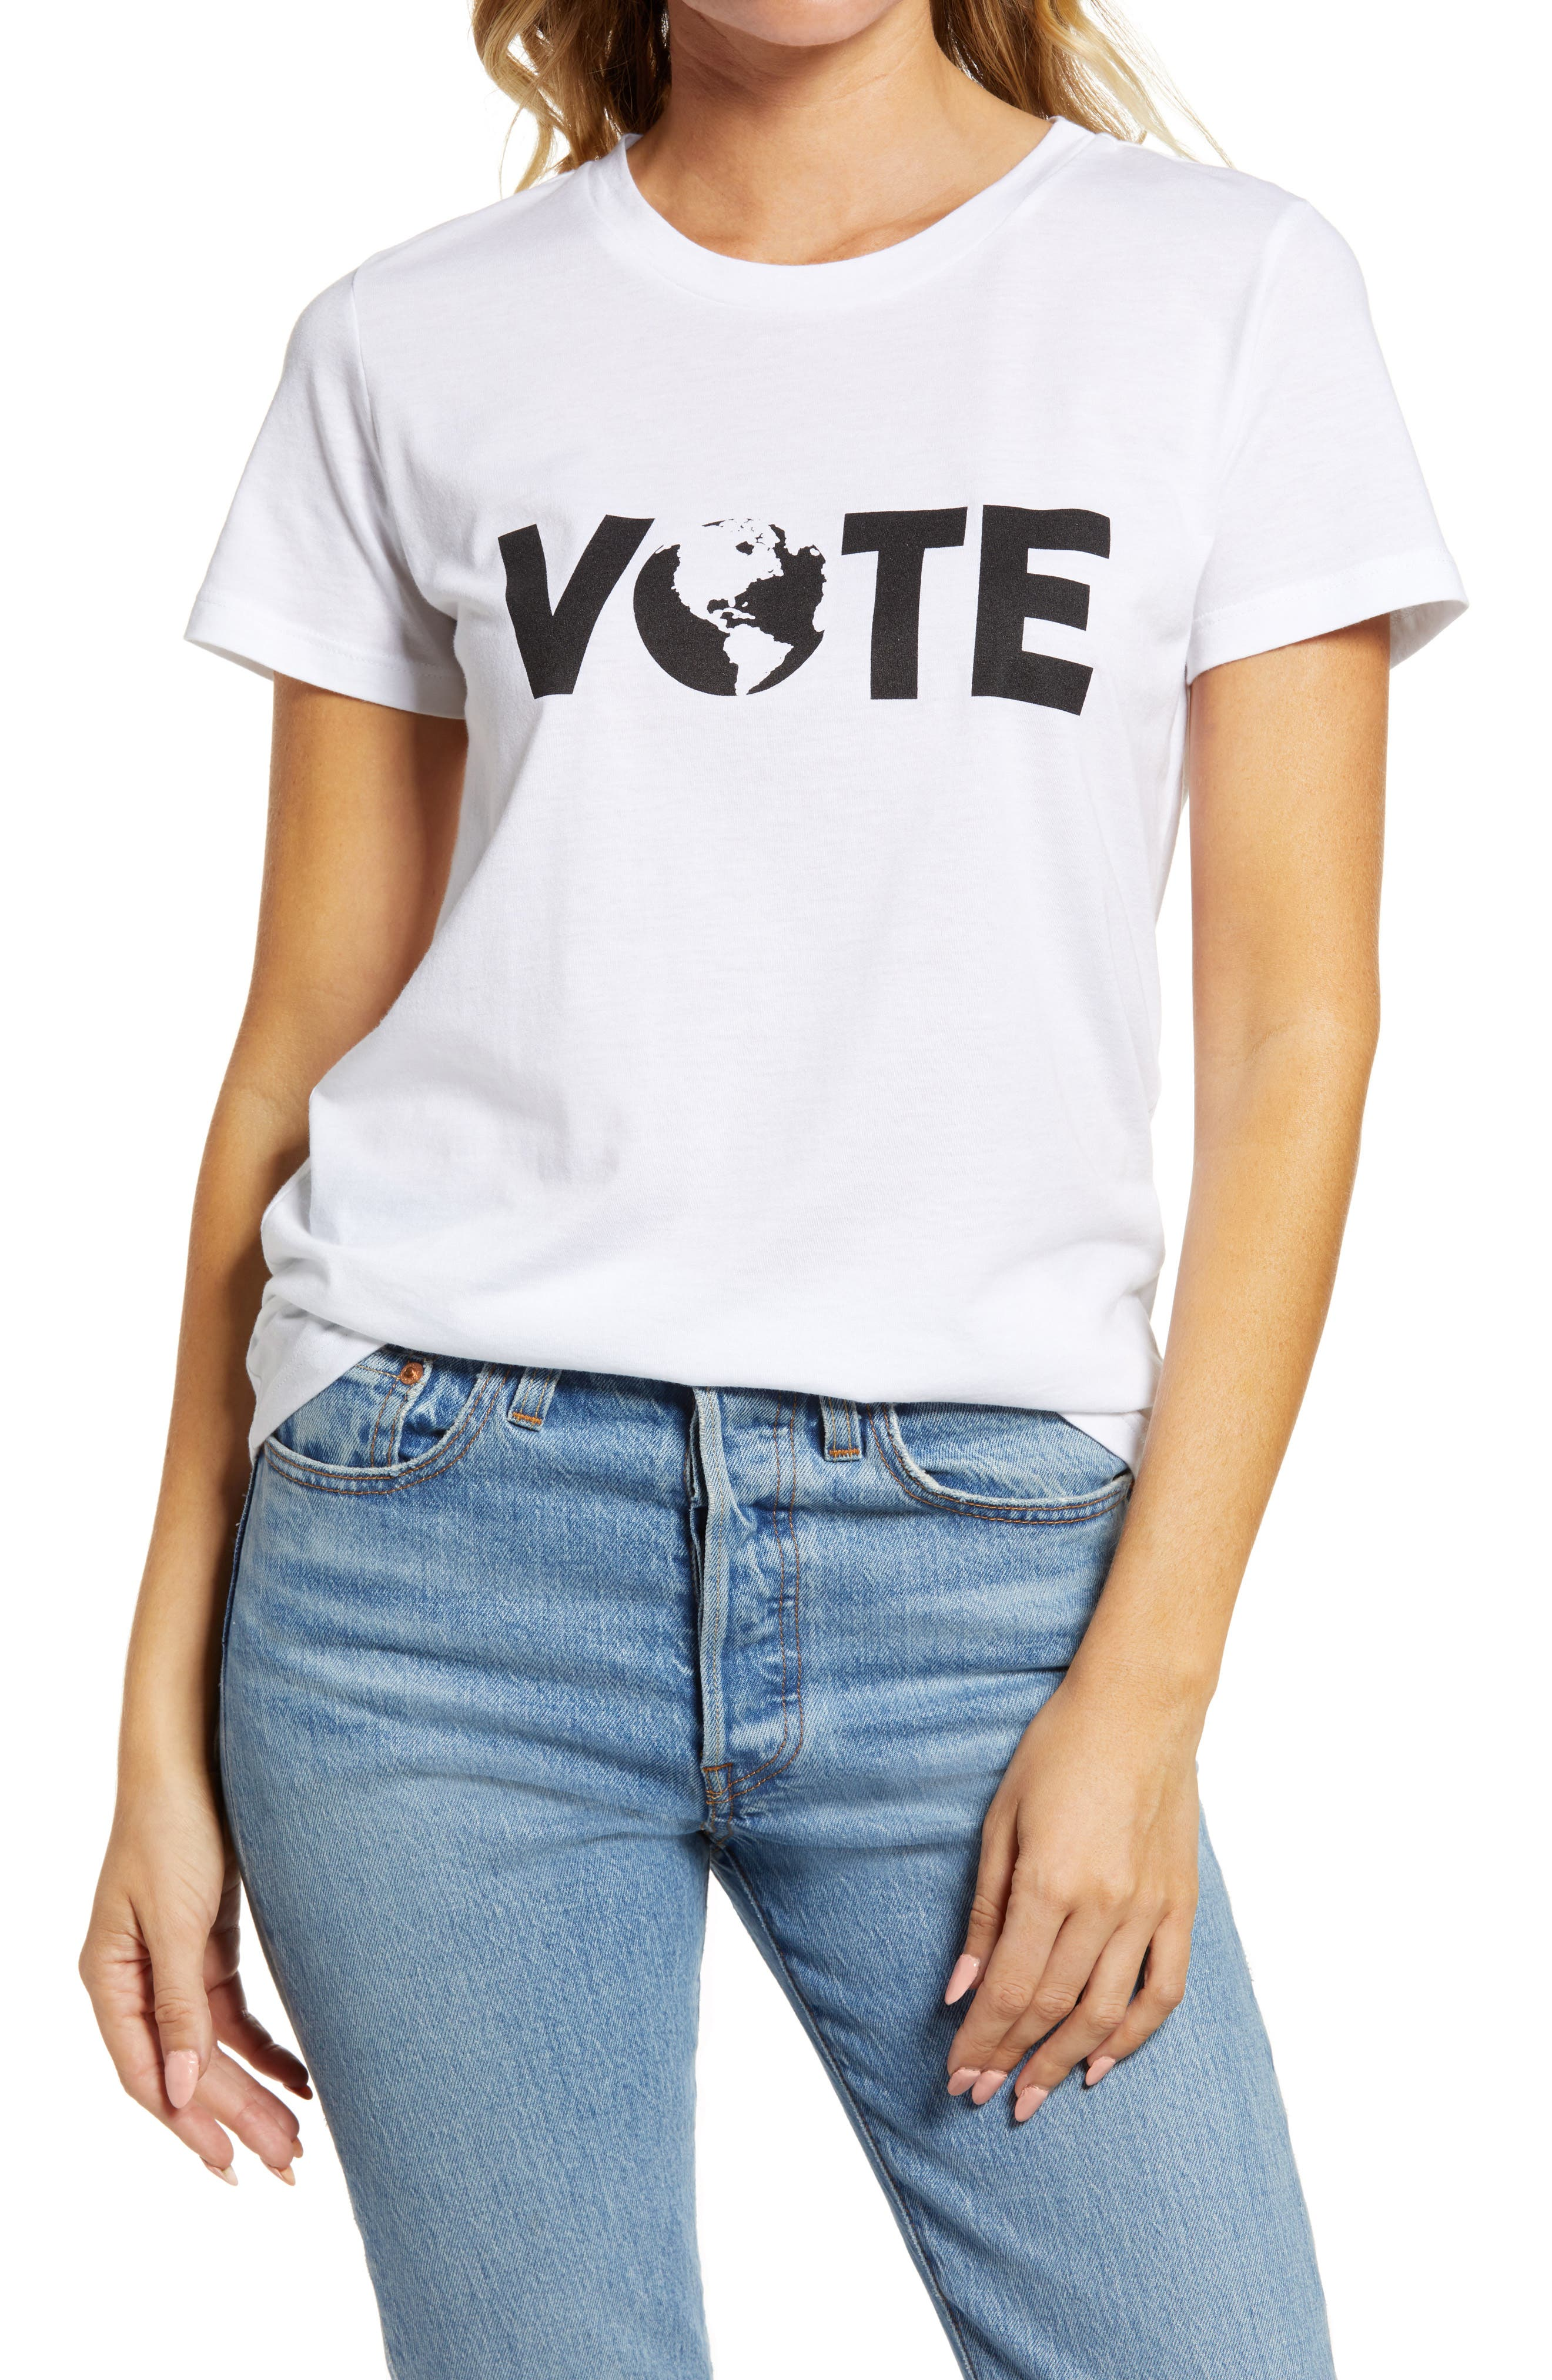 You\\\'ll know what to do as long as you keep wearing this supersoft cotton-blend tee printed with a crucial call to action. When you buy Treasure & Bond, Nordstrom will donate 2.5% of net sales to organizations that work to empower youth. Style Name: Treasure & Bond Vote Collection Women\\\'s Graphic Tee. Style Number: 6088870. Available in stores.